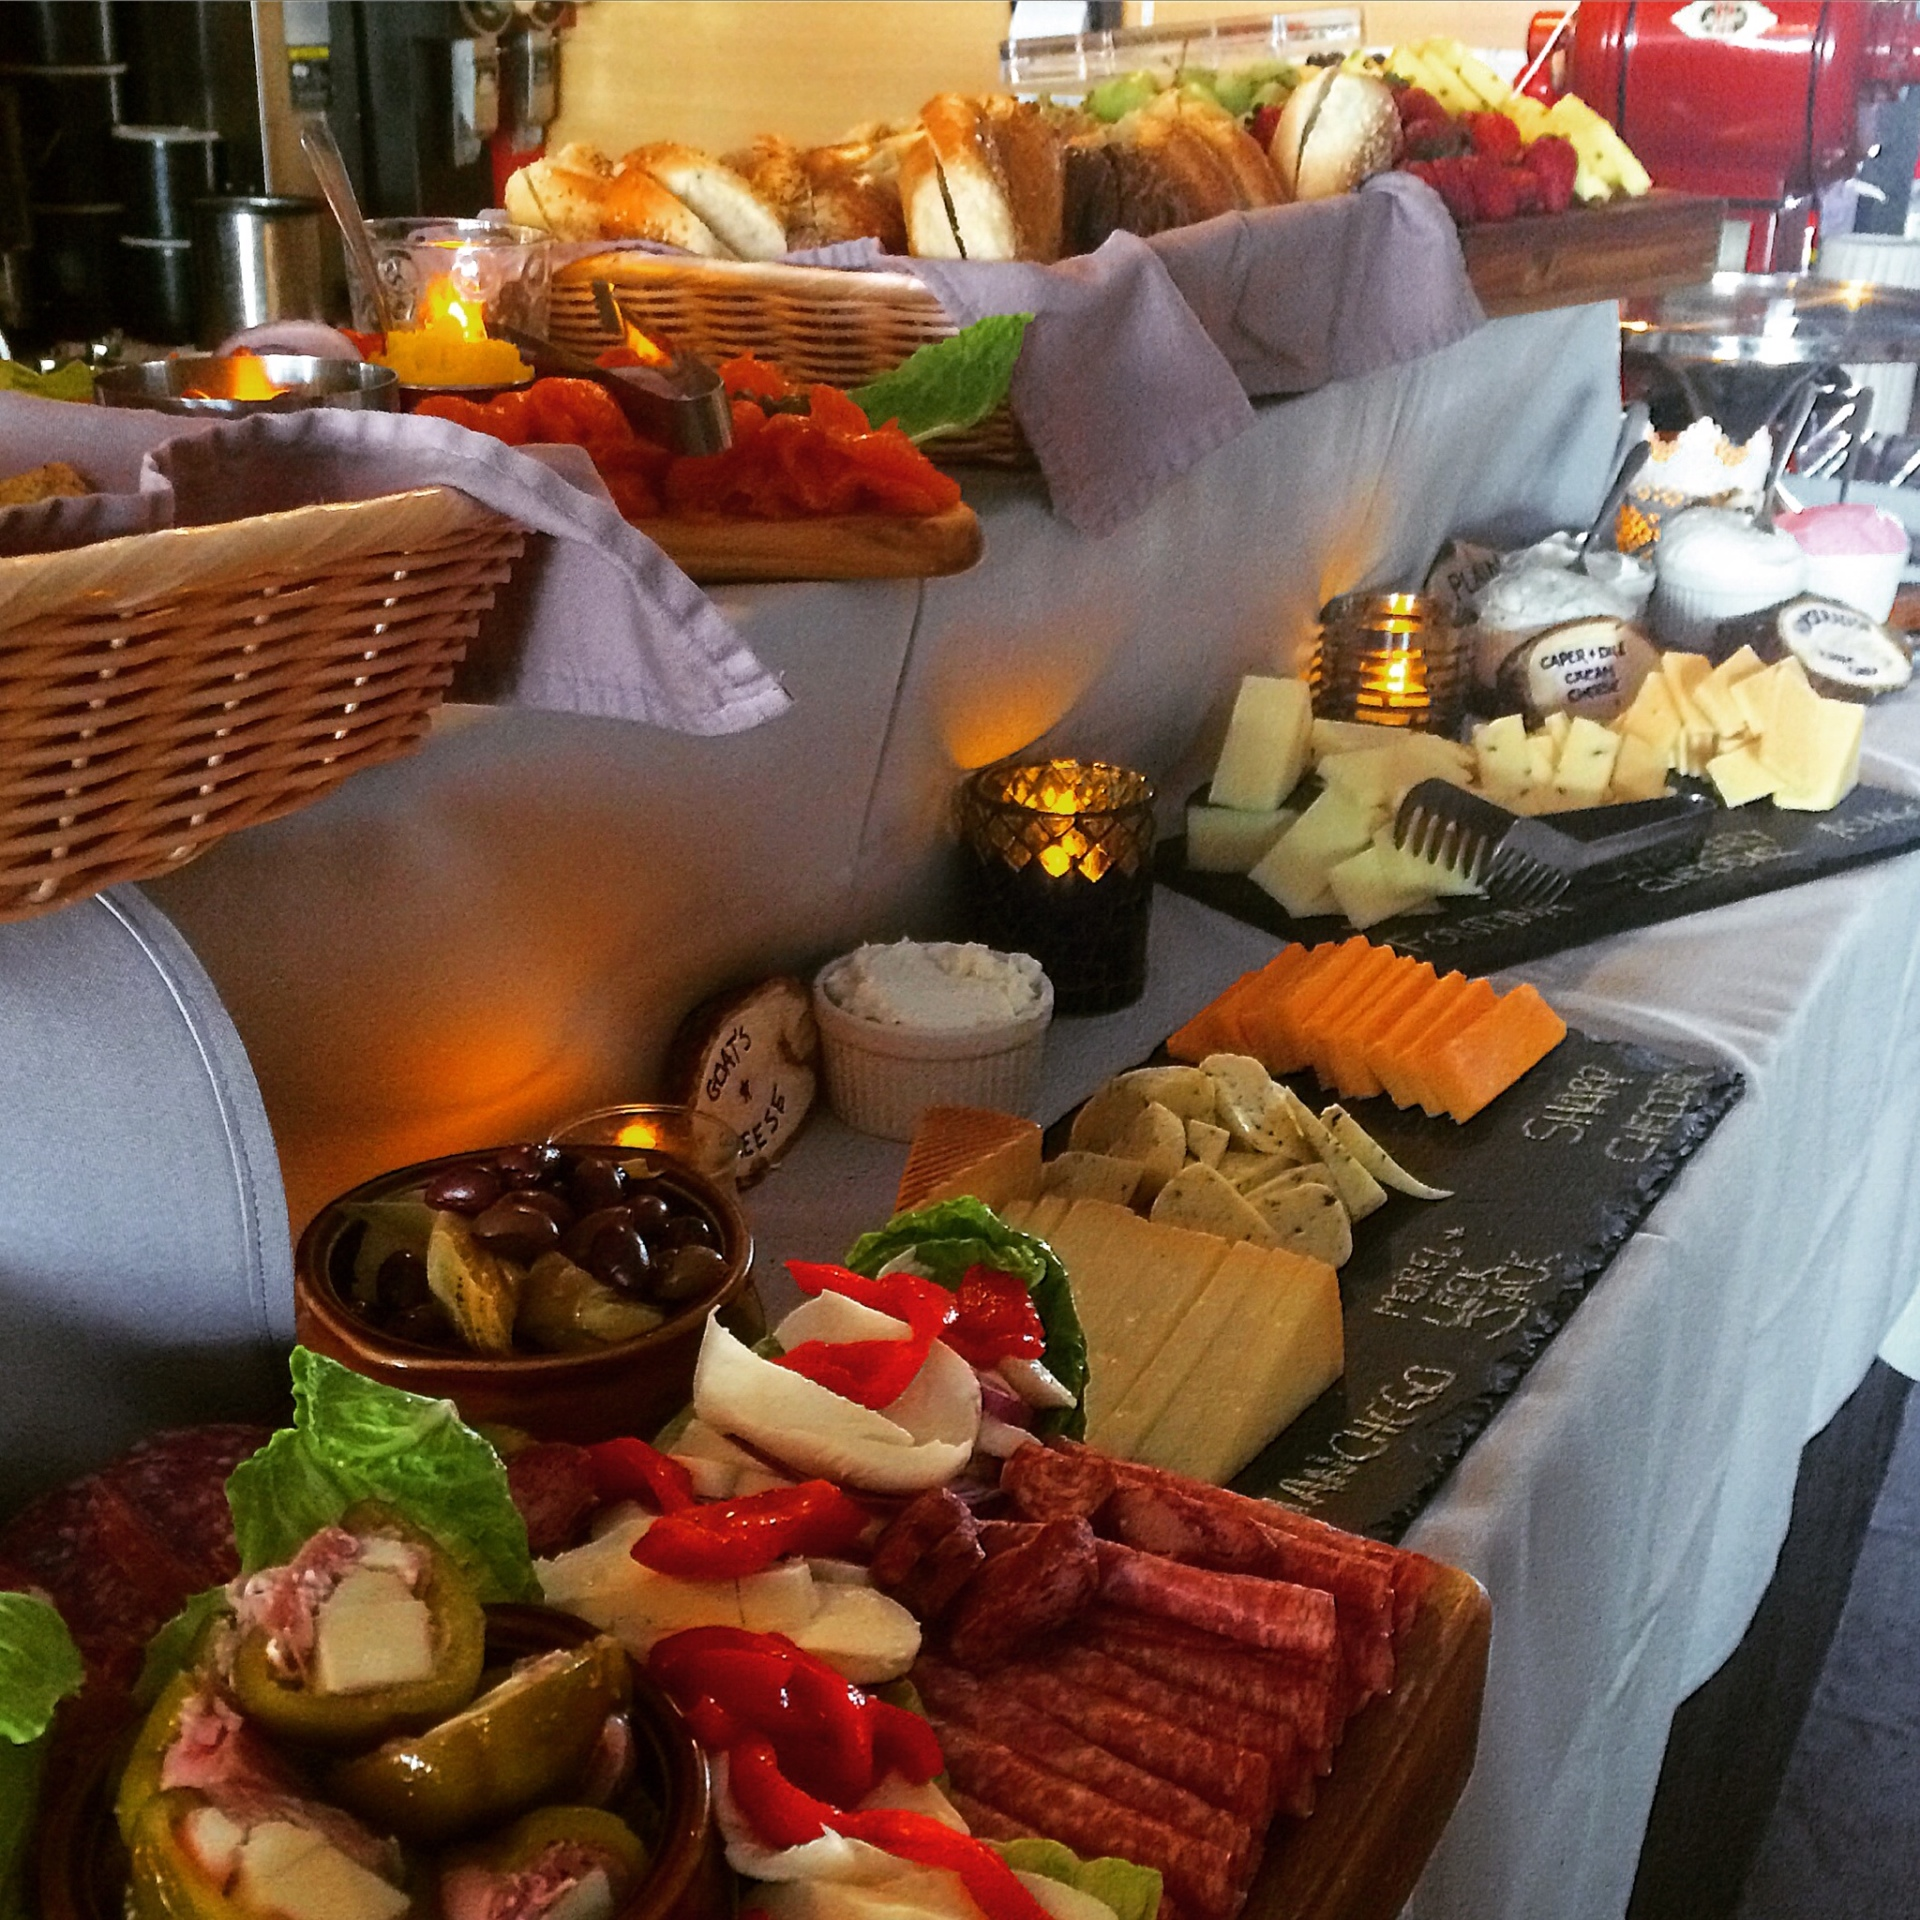 A spread for an on site catering event